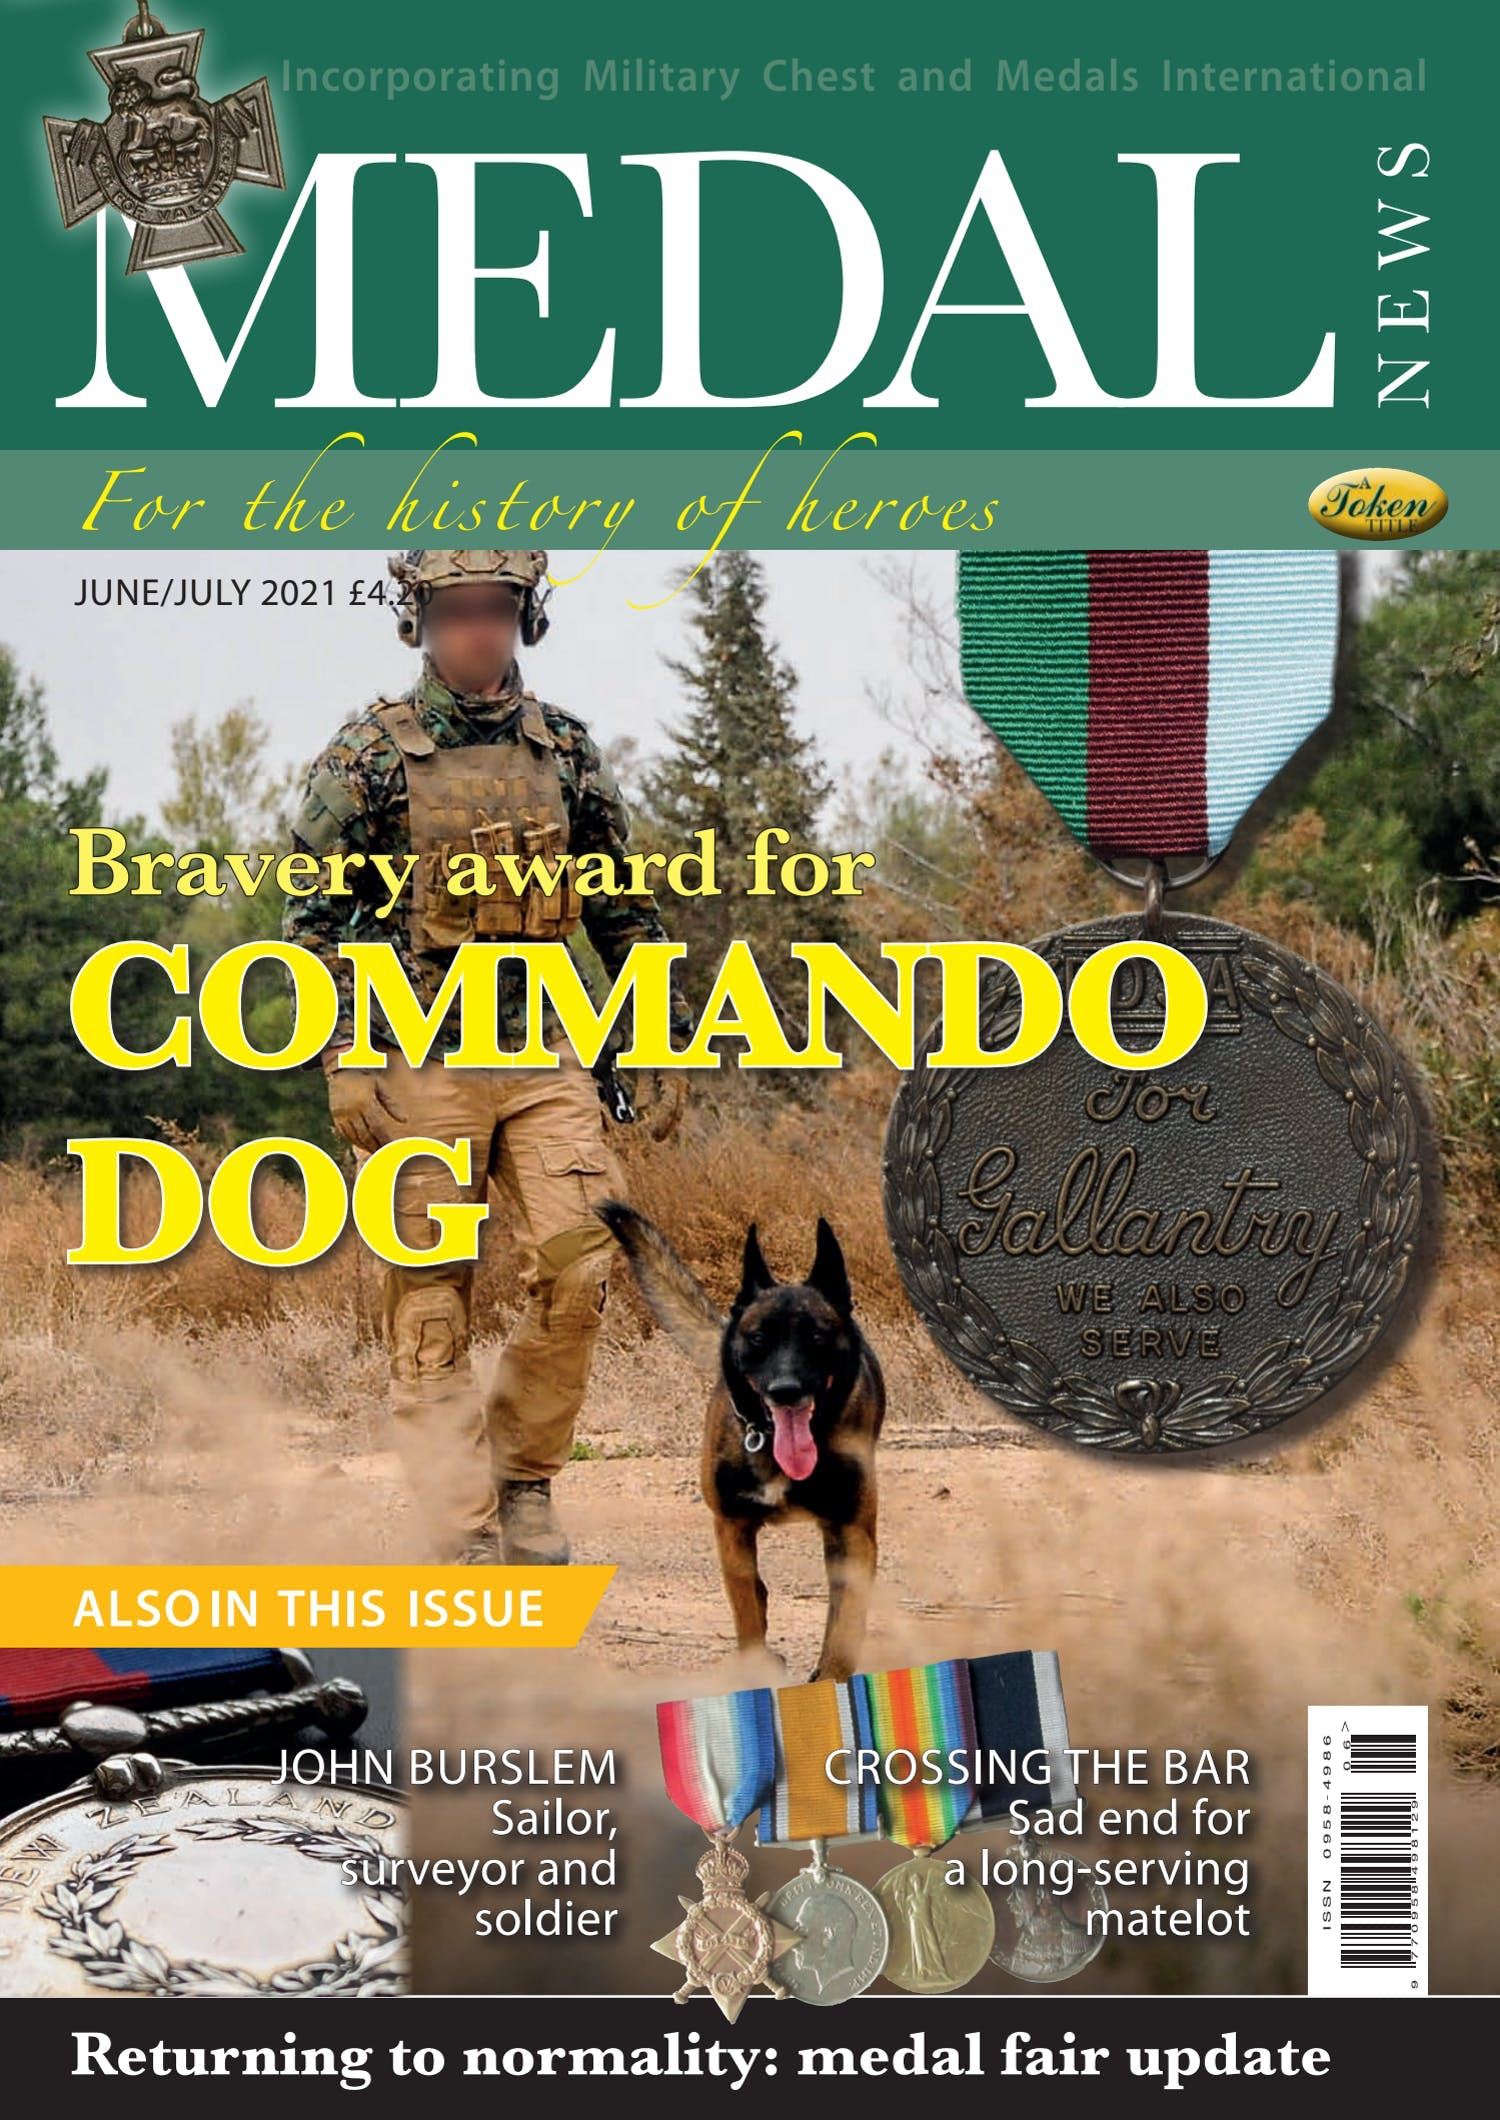 Front cover of 'Commando Dog', Medal News June 2021, Volume 59, Number 6 by Token Publishing